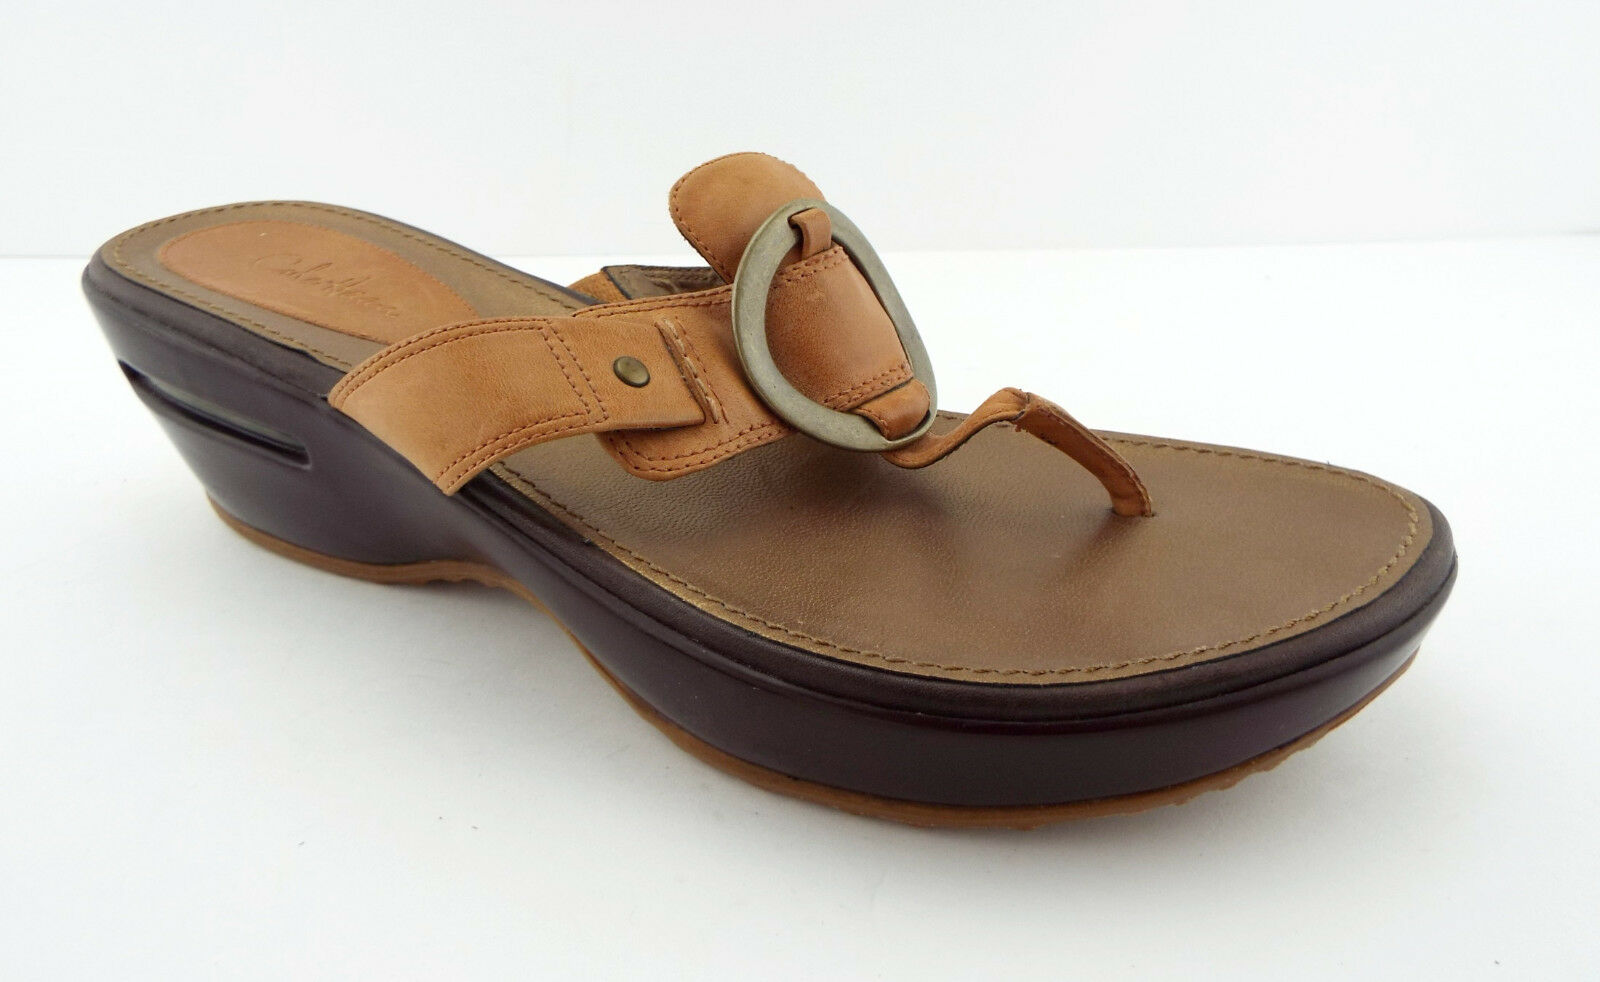 COLE HAAN Air Size 10 Tan Leather Thong Sandals shoes